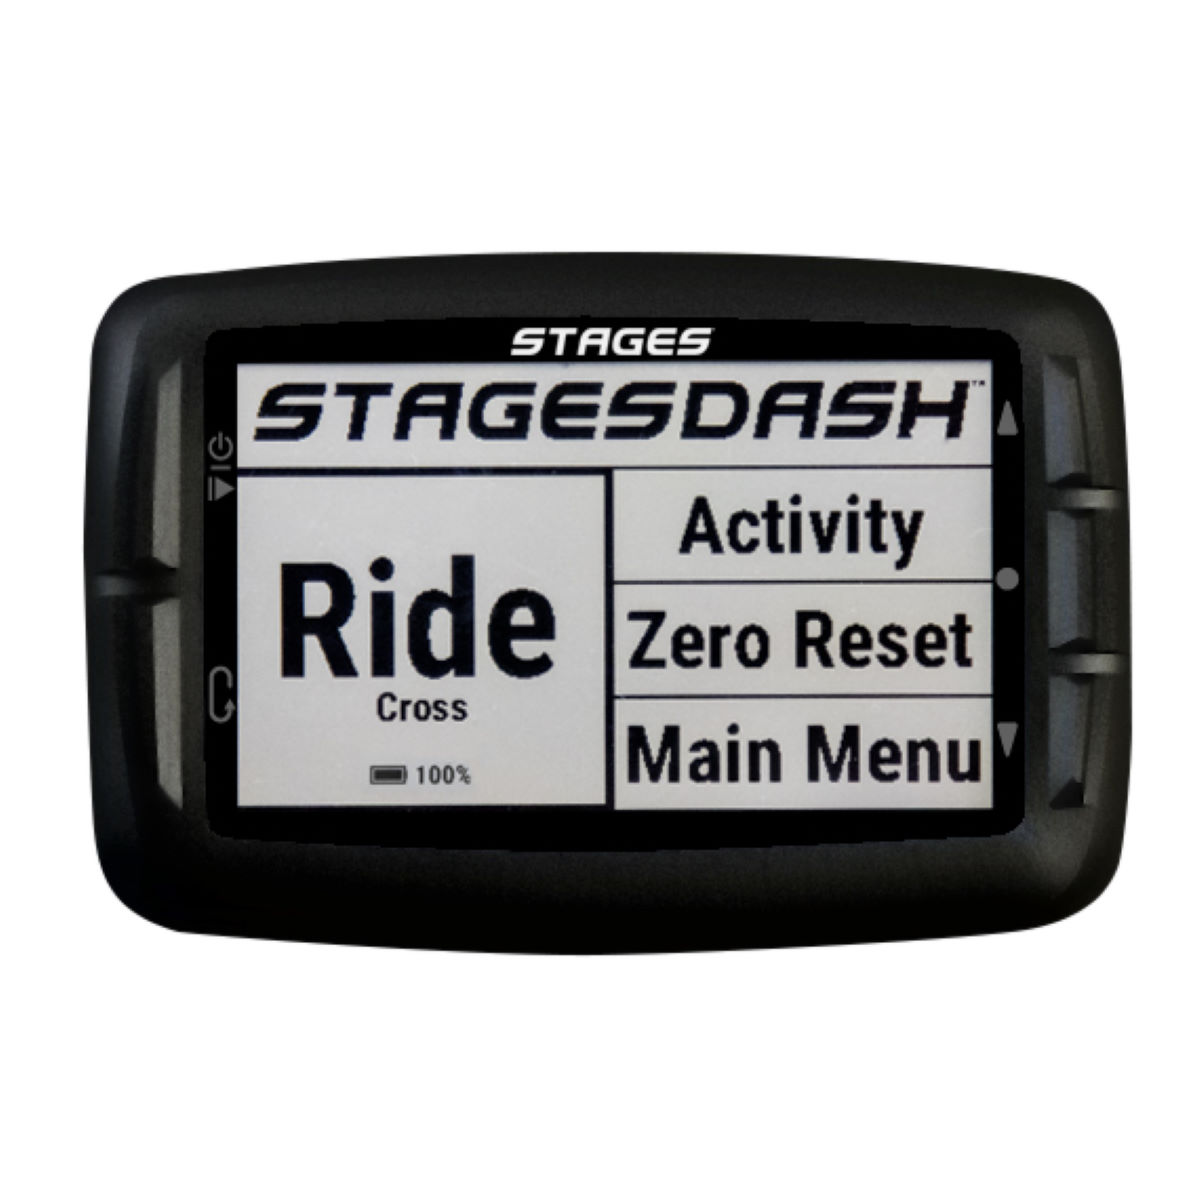 Stages Cycling Dash Cykeldator - Cykeldatorer med GPS